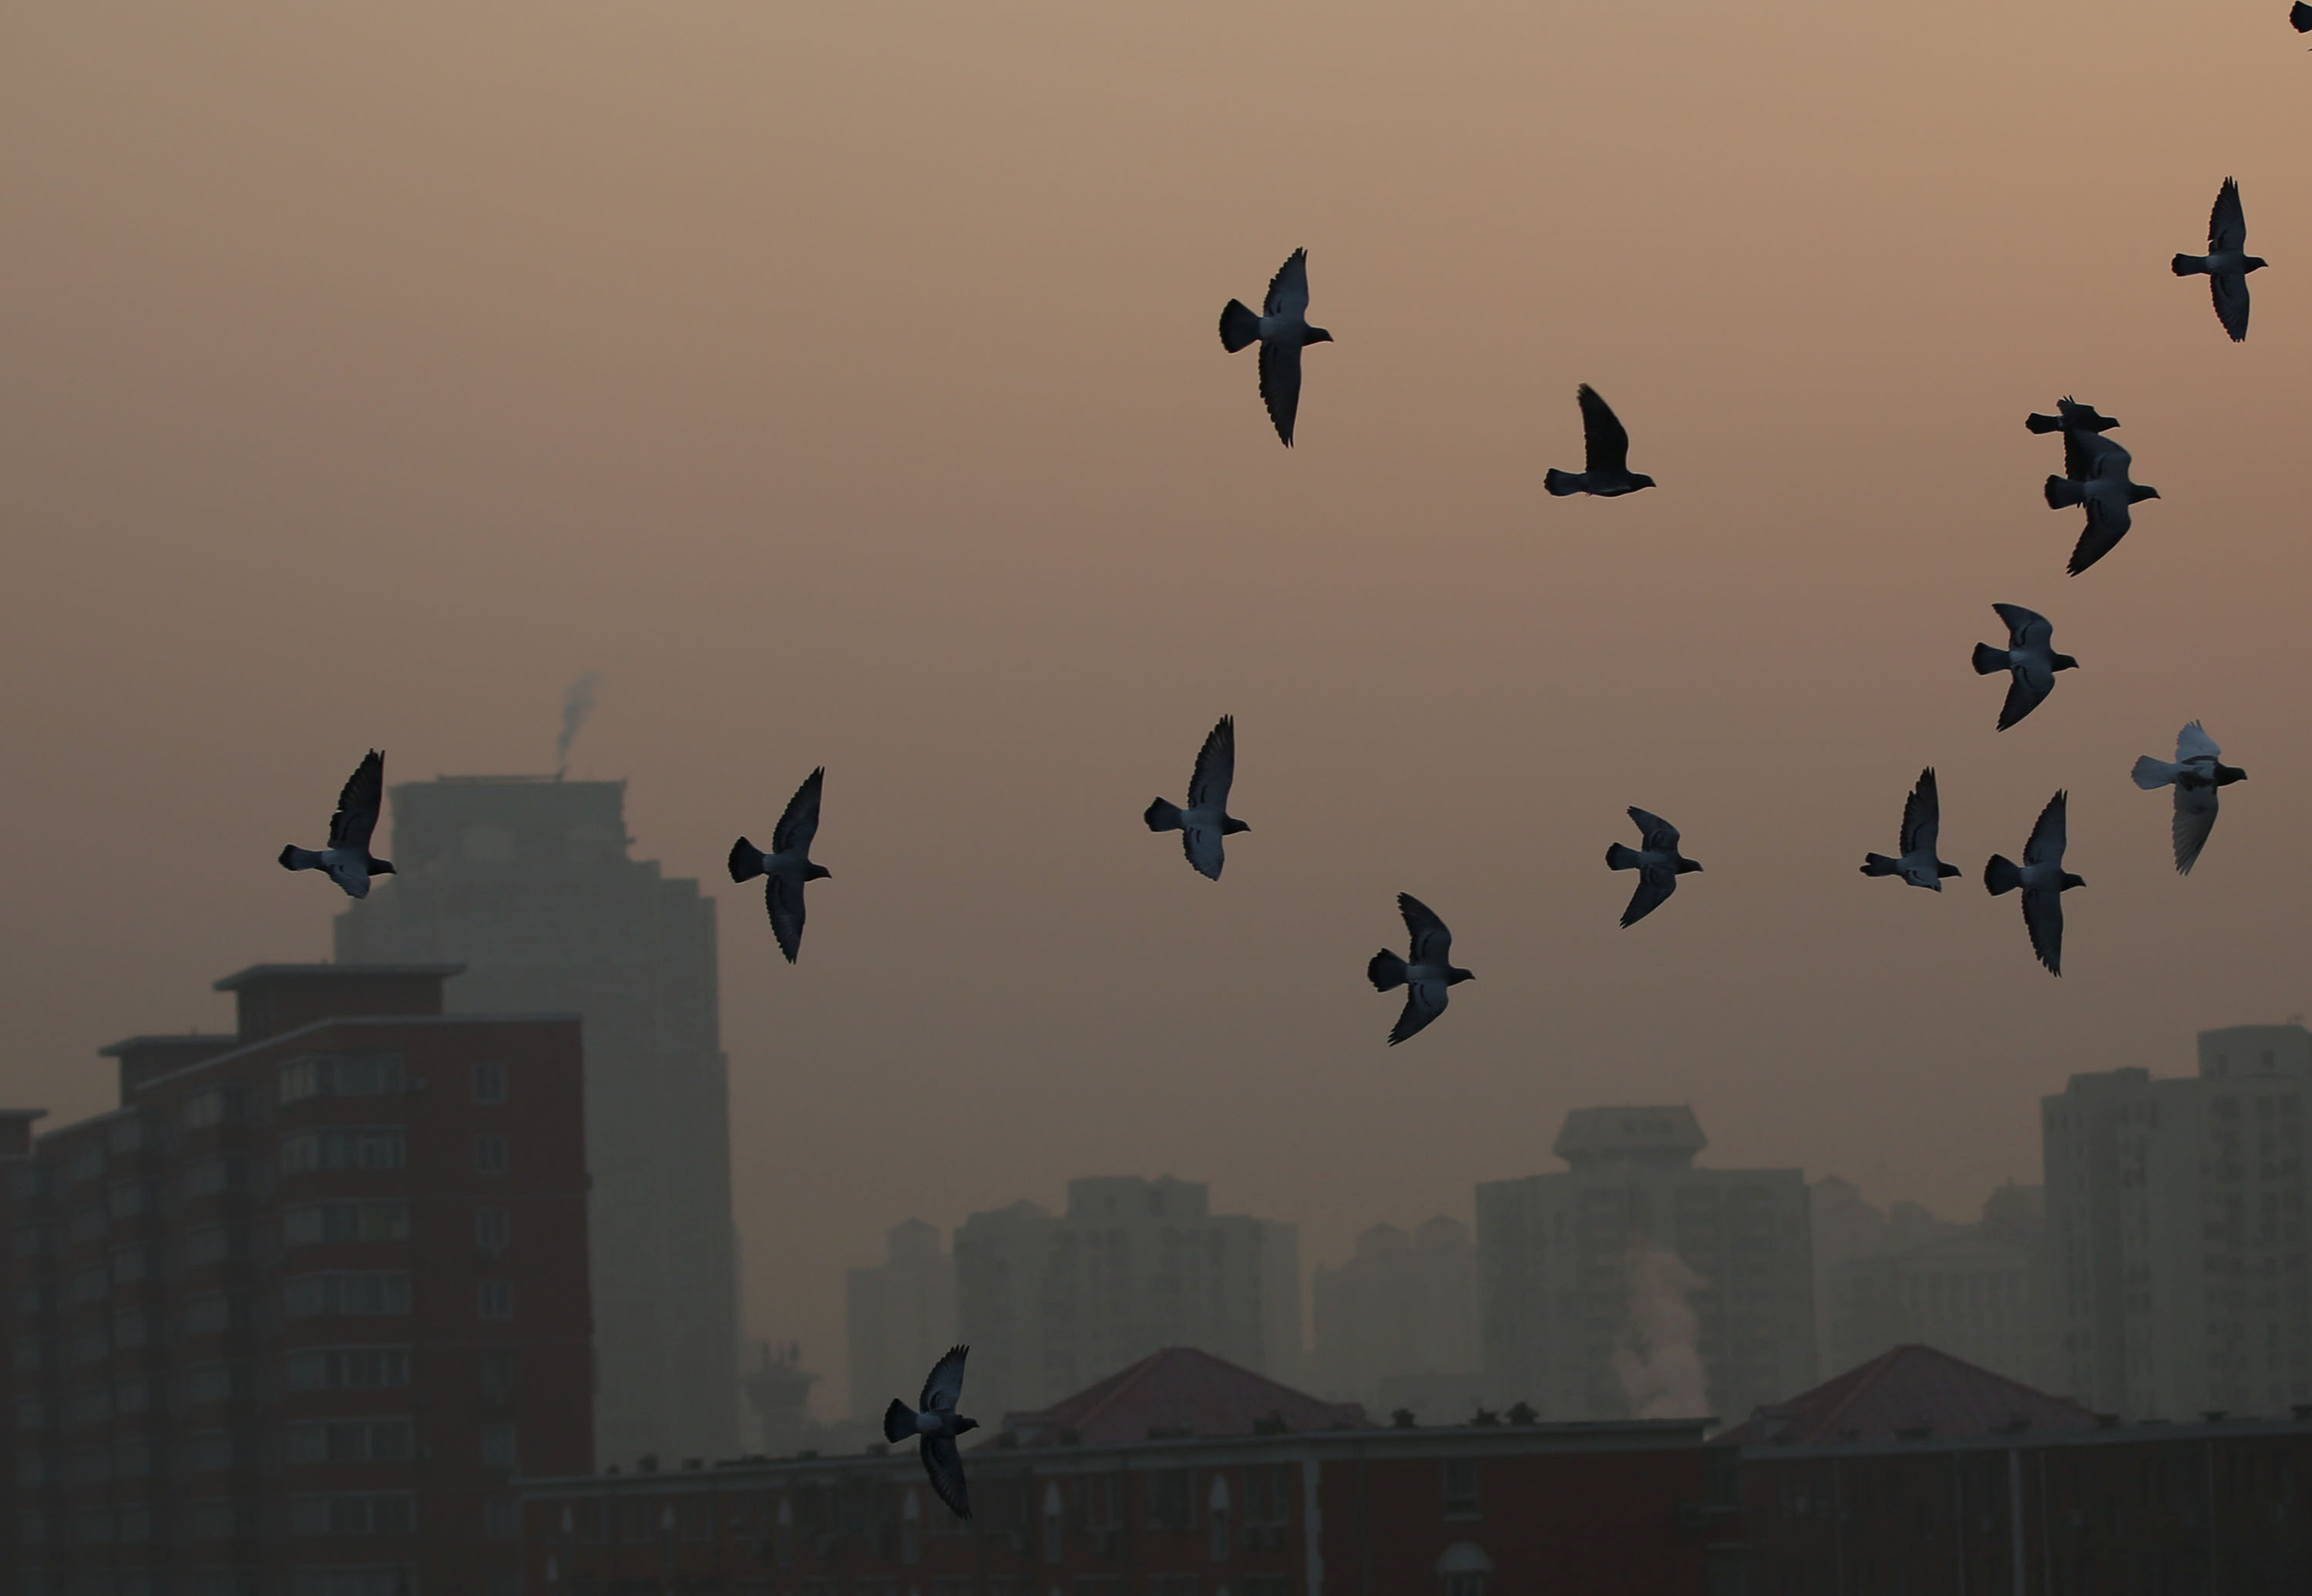 Pigeons fly in heavy smog during a polluted day in Beijing, China, December 19, 2016. REUTERS/Stringer ATTENTION EDITORS - THIS PICTURE WAS PROVIDED BY A THIRD PARTY. EDITORIAL USE ONLY. CHINA OUT. NO COMMERCIAL OR EDITORIAL SALES IN CHINA. - RTX2VLIT